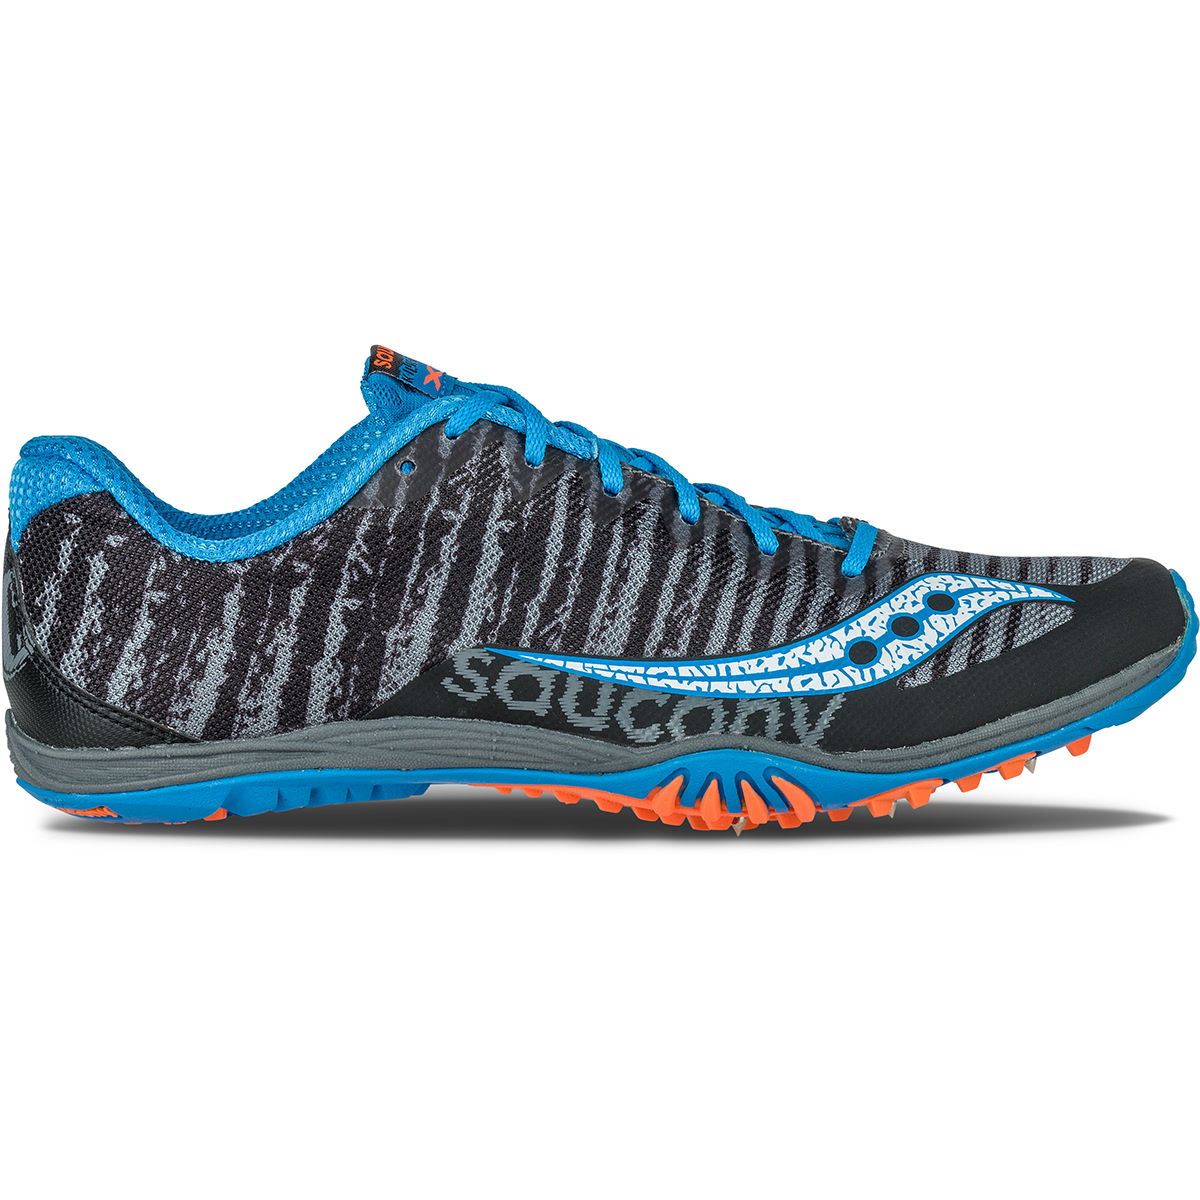 Chaussures de cross-country Saucony Kilkenny (AH16) - 8 UK Black/Carolina Chaussures de running à pointes